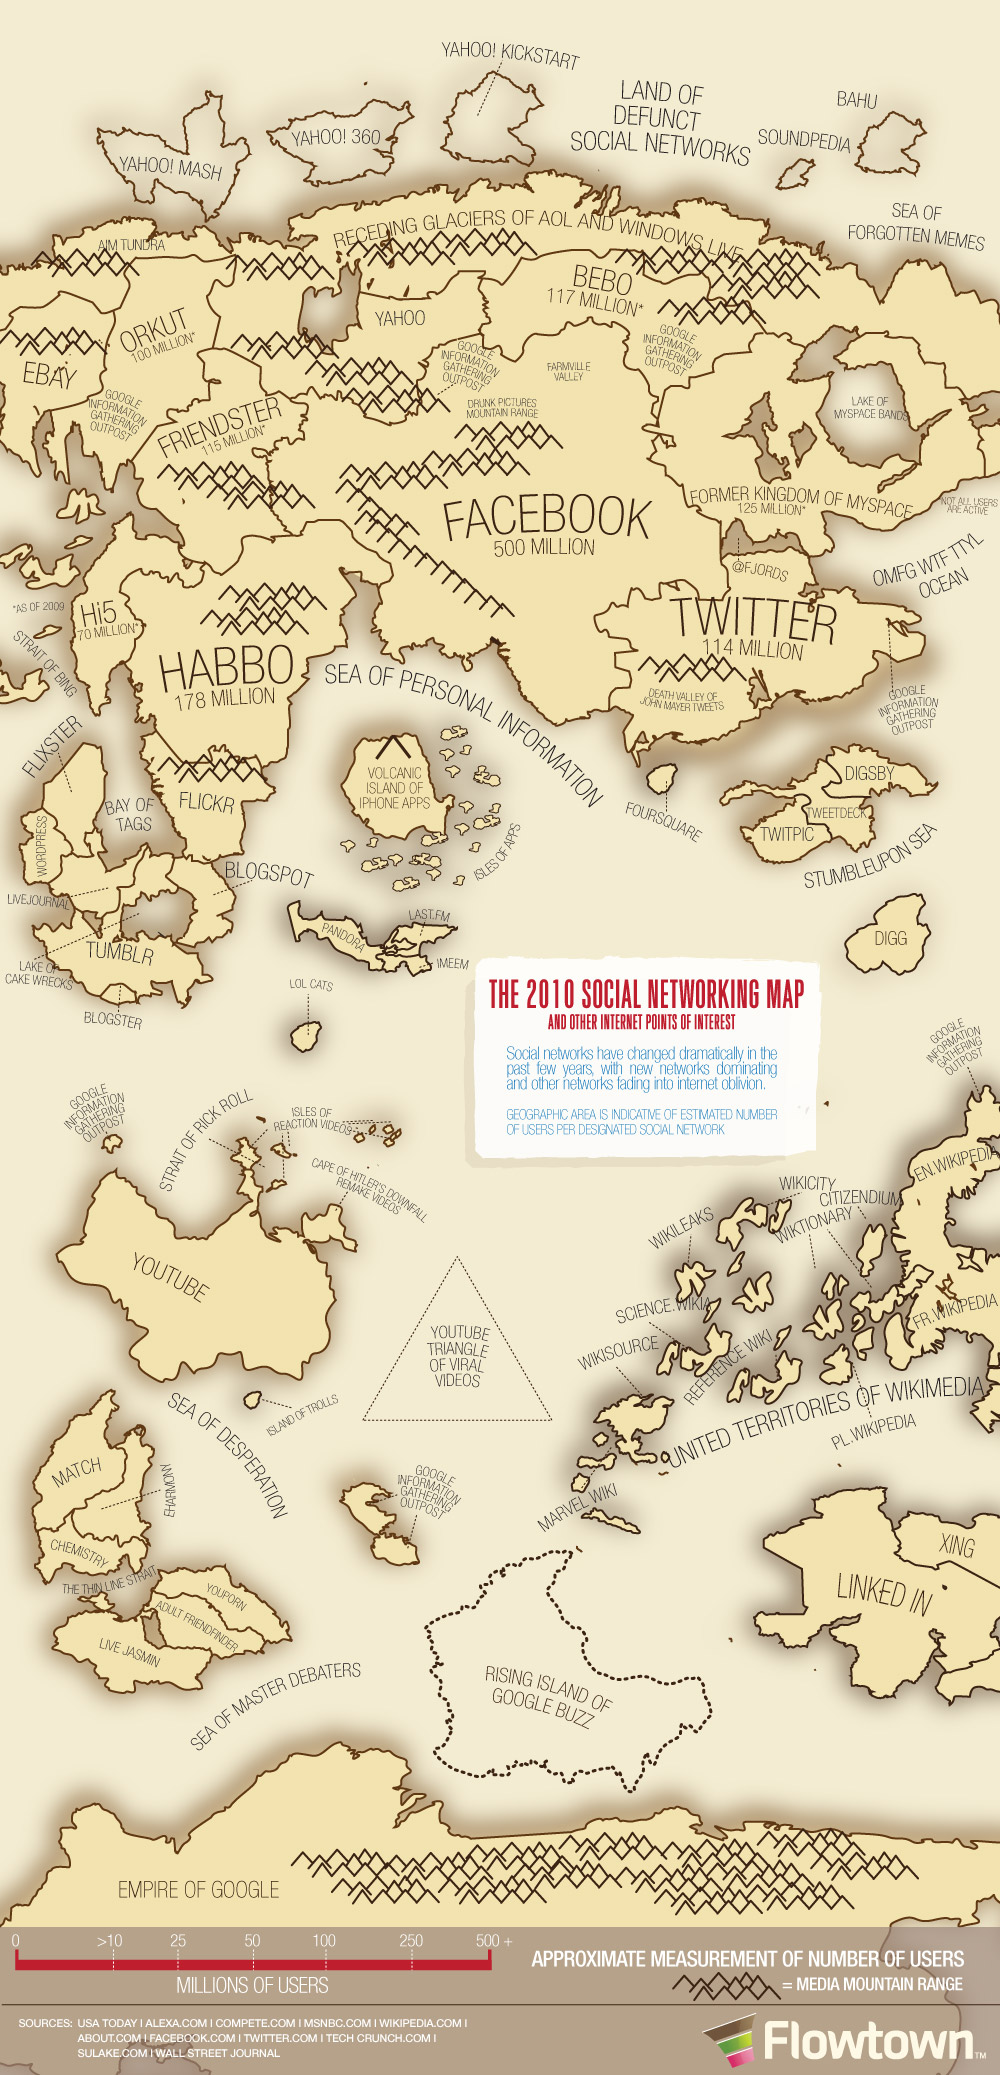 The-2010-Social-Networking-Map-Large.jpg 1000×2075 pixels